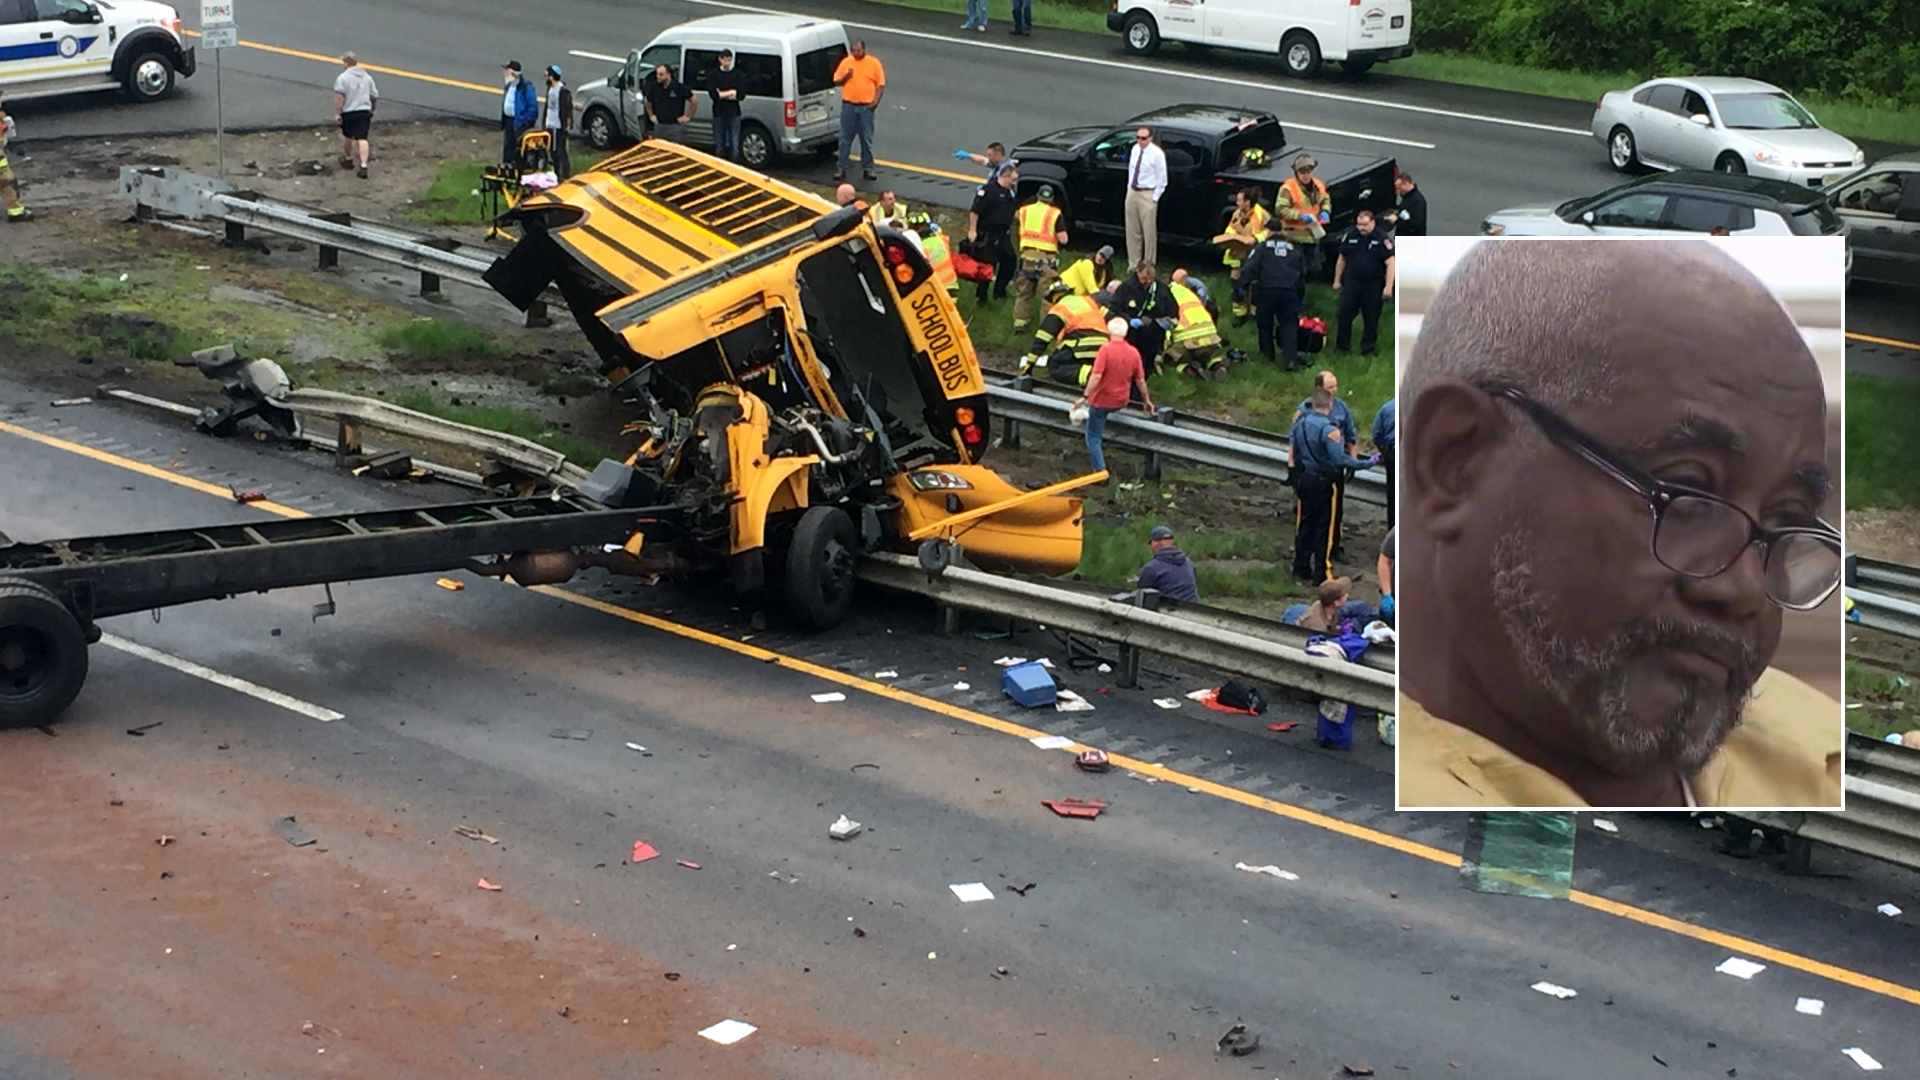 Driver in New Jersey School Bus Crash That Killed Student, Teacher to Be Sentenced